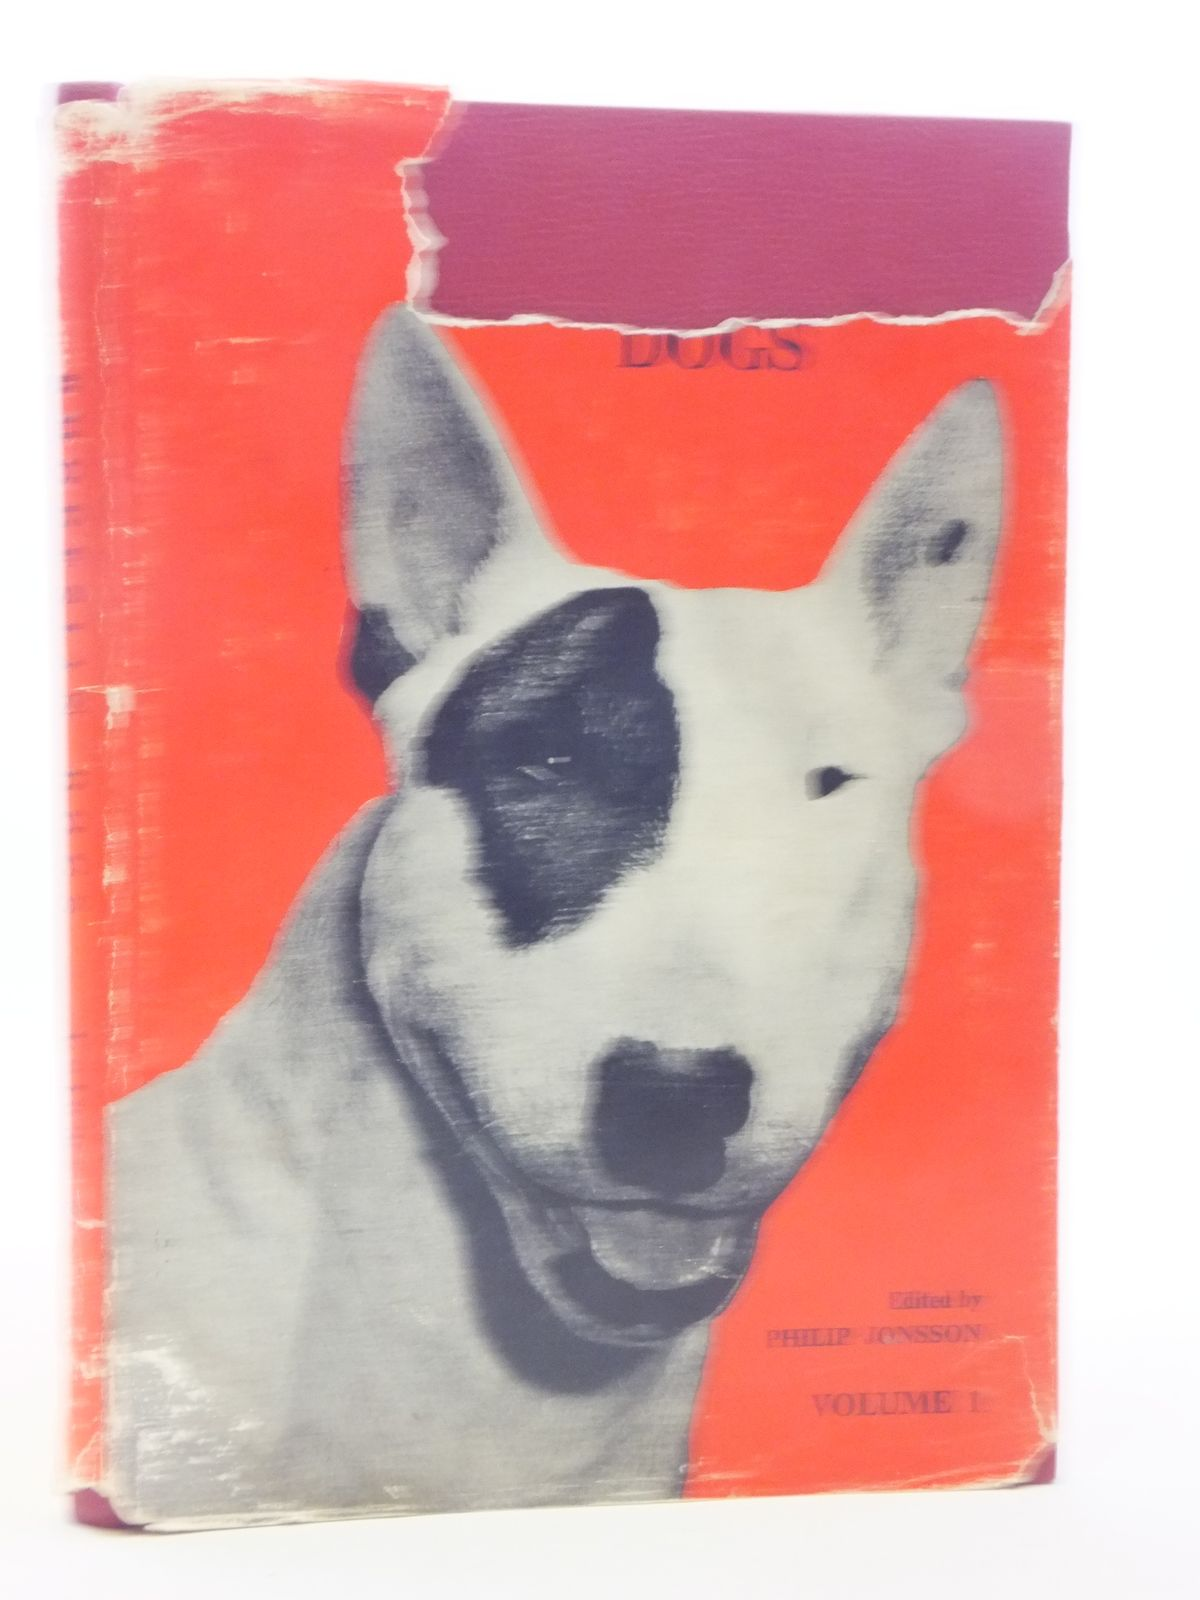 Photo of RHODESIAN DOGS VOLUME 1 written by Jonsson, Philip published by Philip Jonsson (STOCK CODE: 1605739)  for sale by Stella & Rose's Books